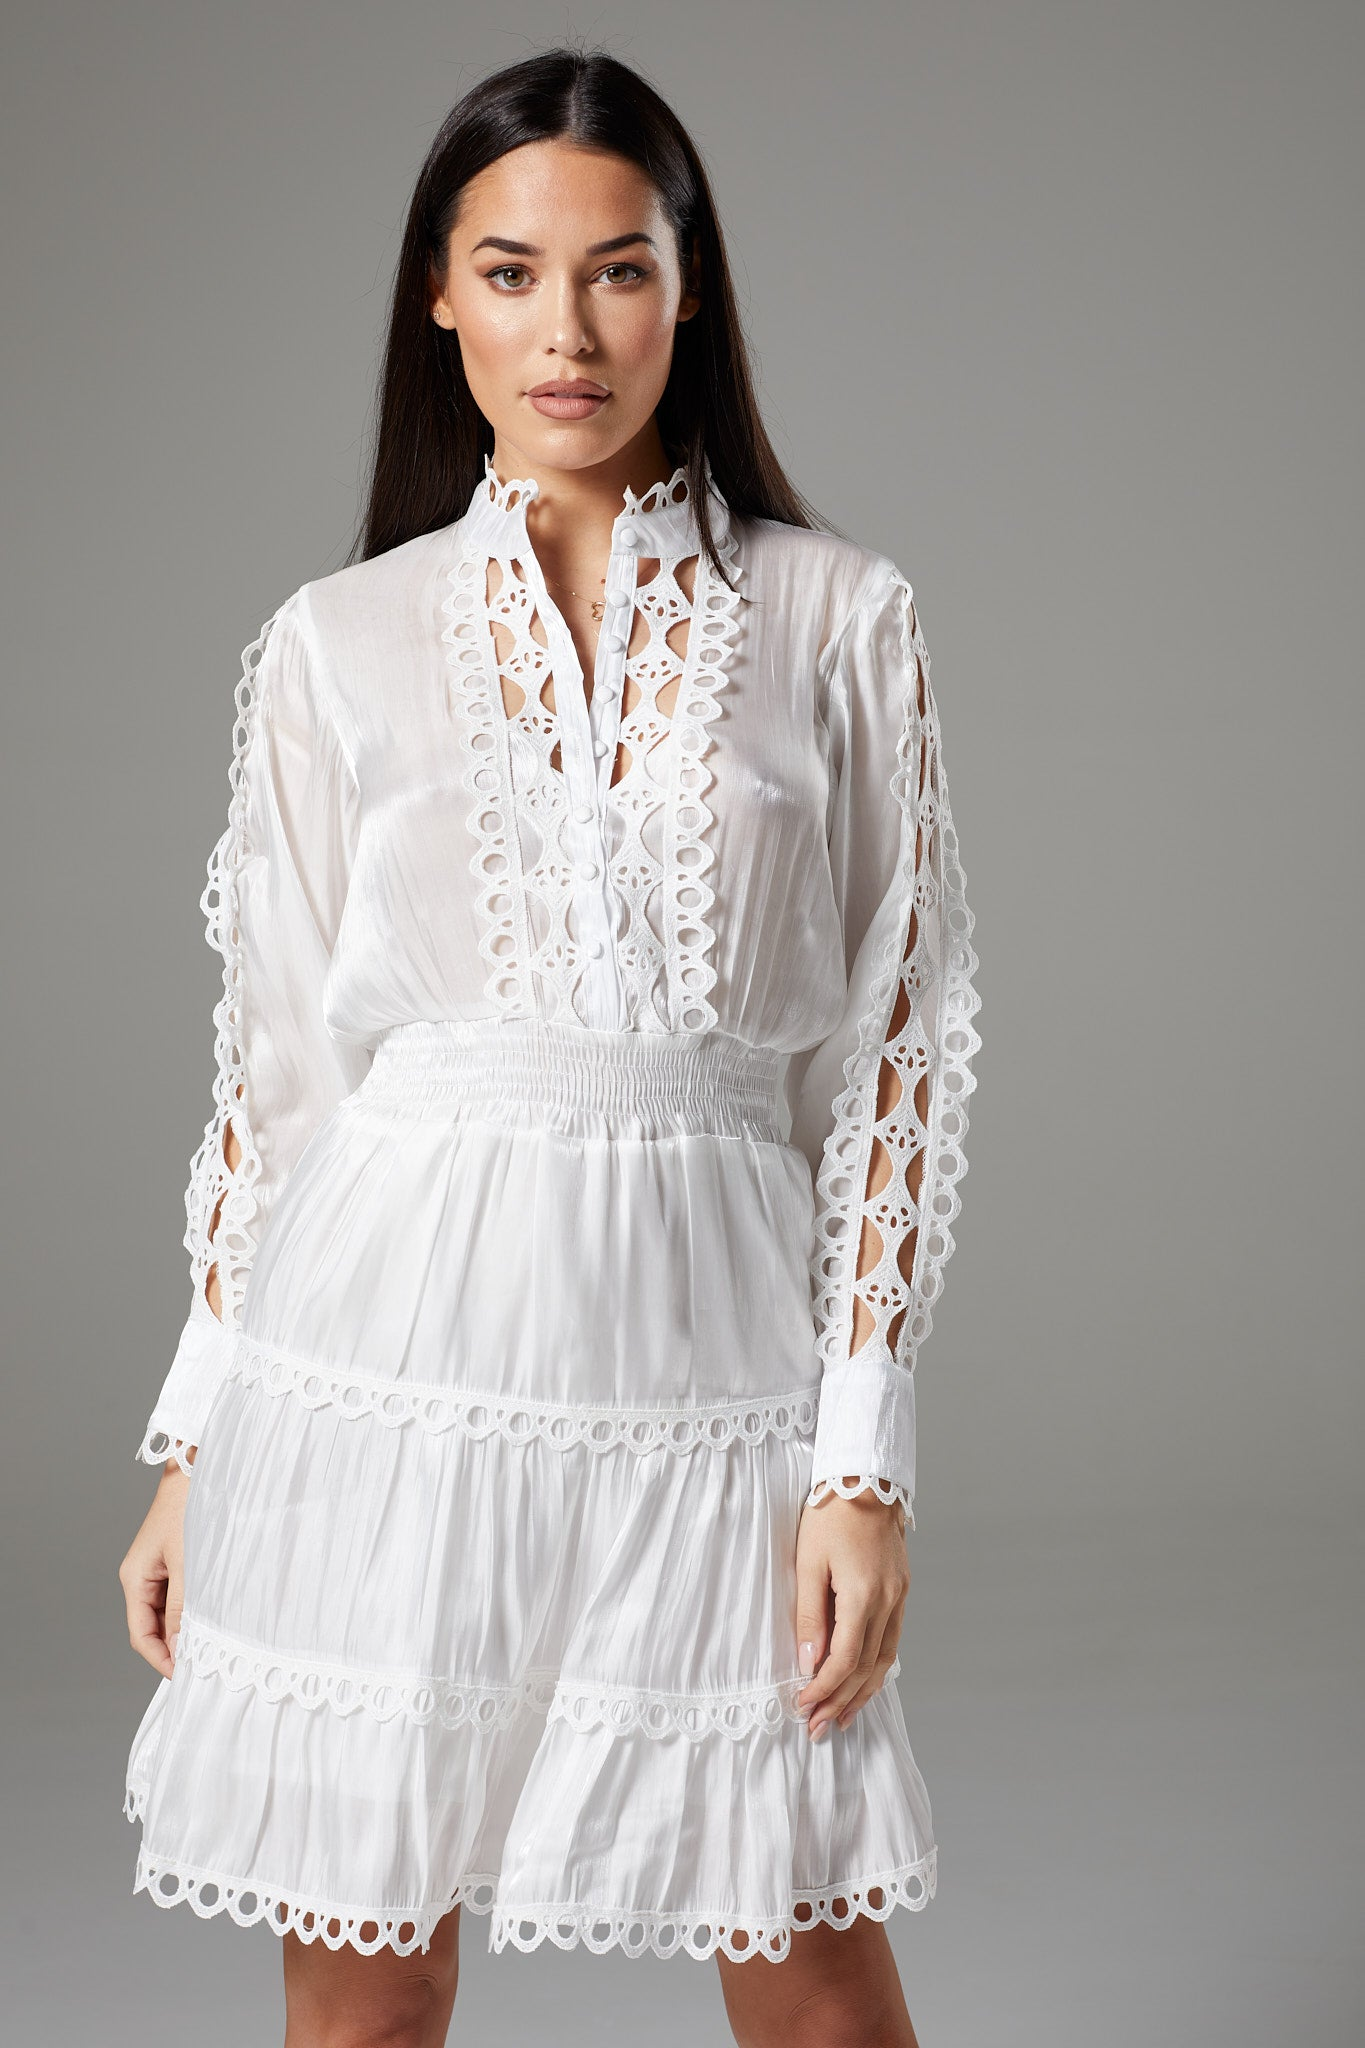 Long Sleeve White Dress with Fancy Lace